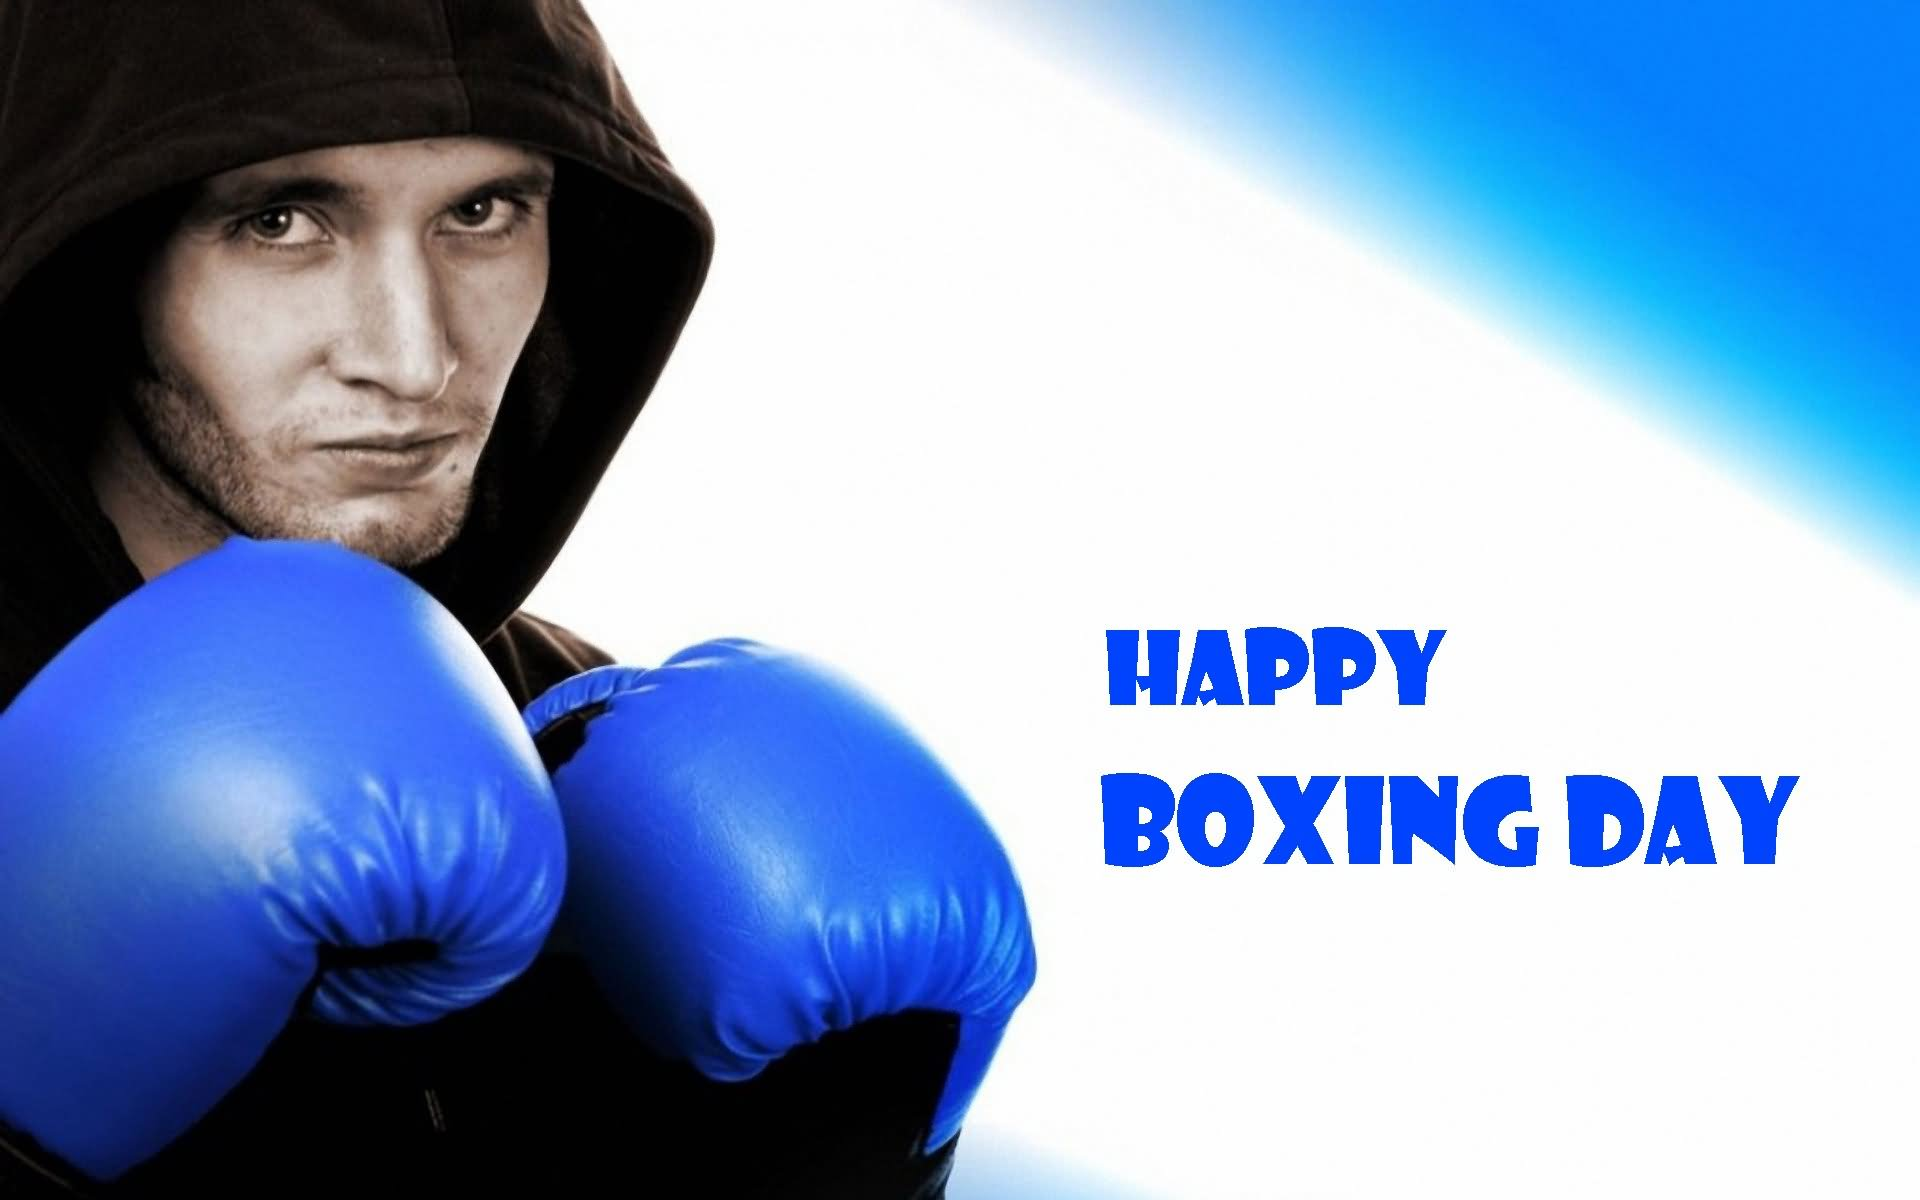 Happy Boxing Day 2015